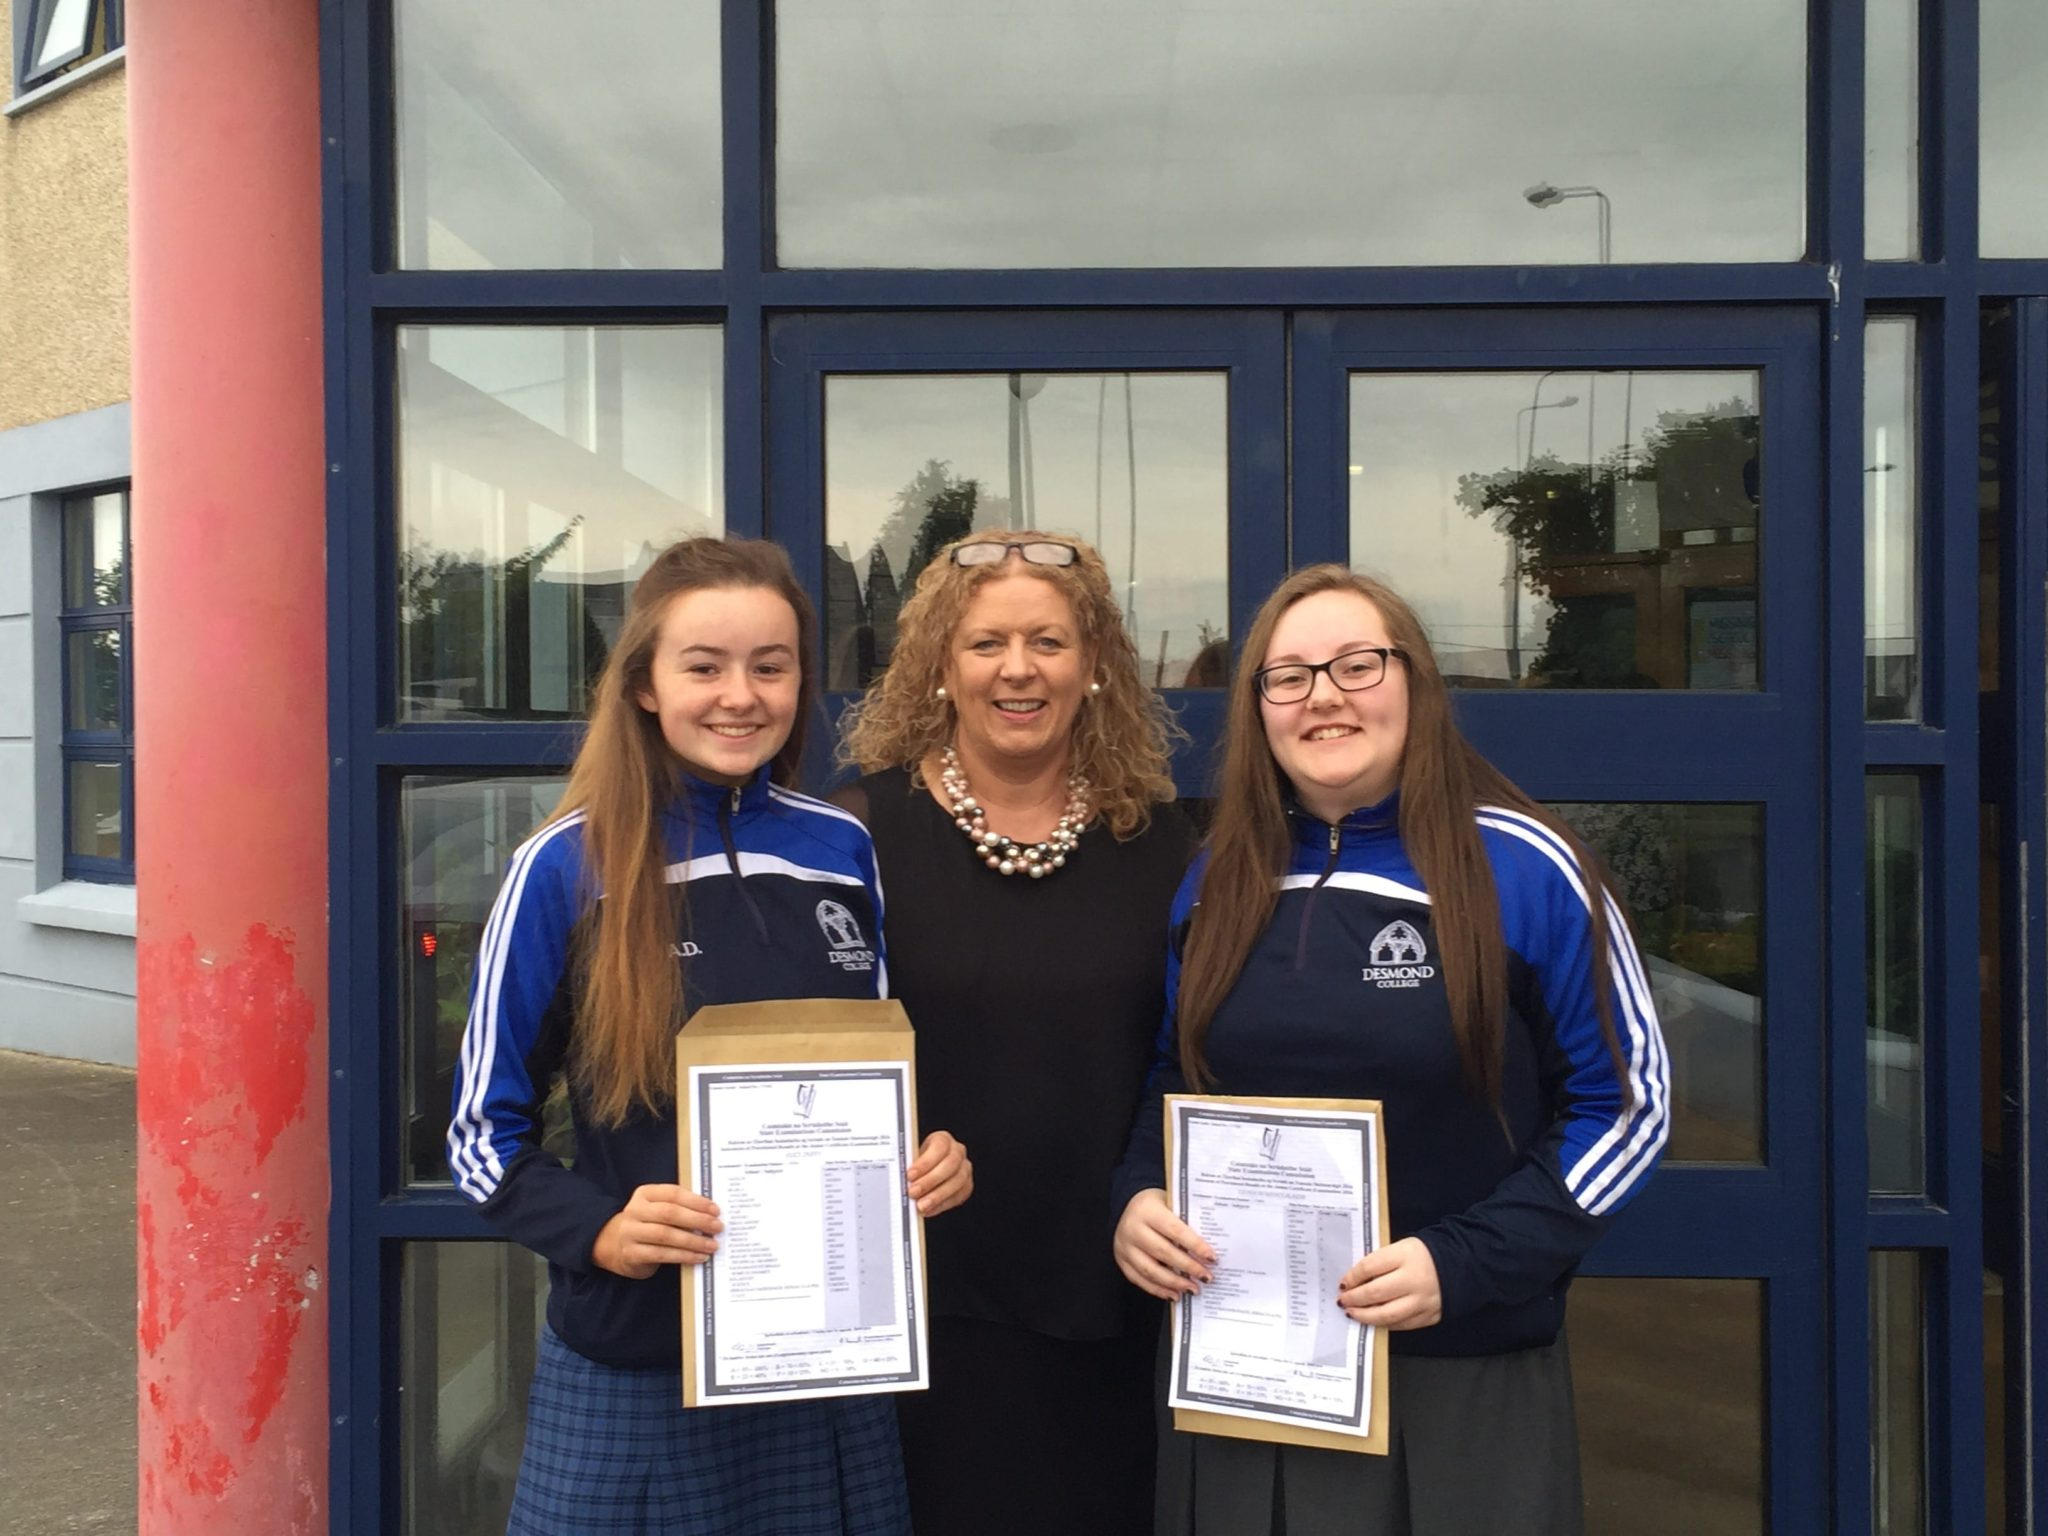 September 2016: Alice Duffy and Leona Ni Mhaolalaidh pictured with very proud Principal of Desmond College Post Primary School Vourneen Gavin Barry